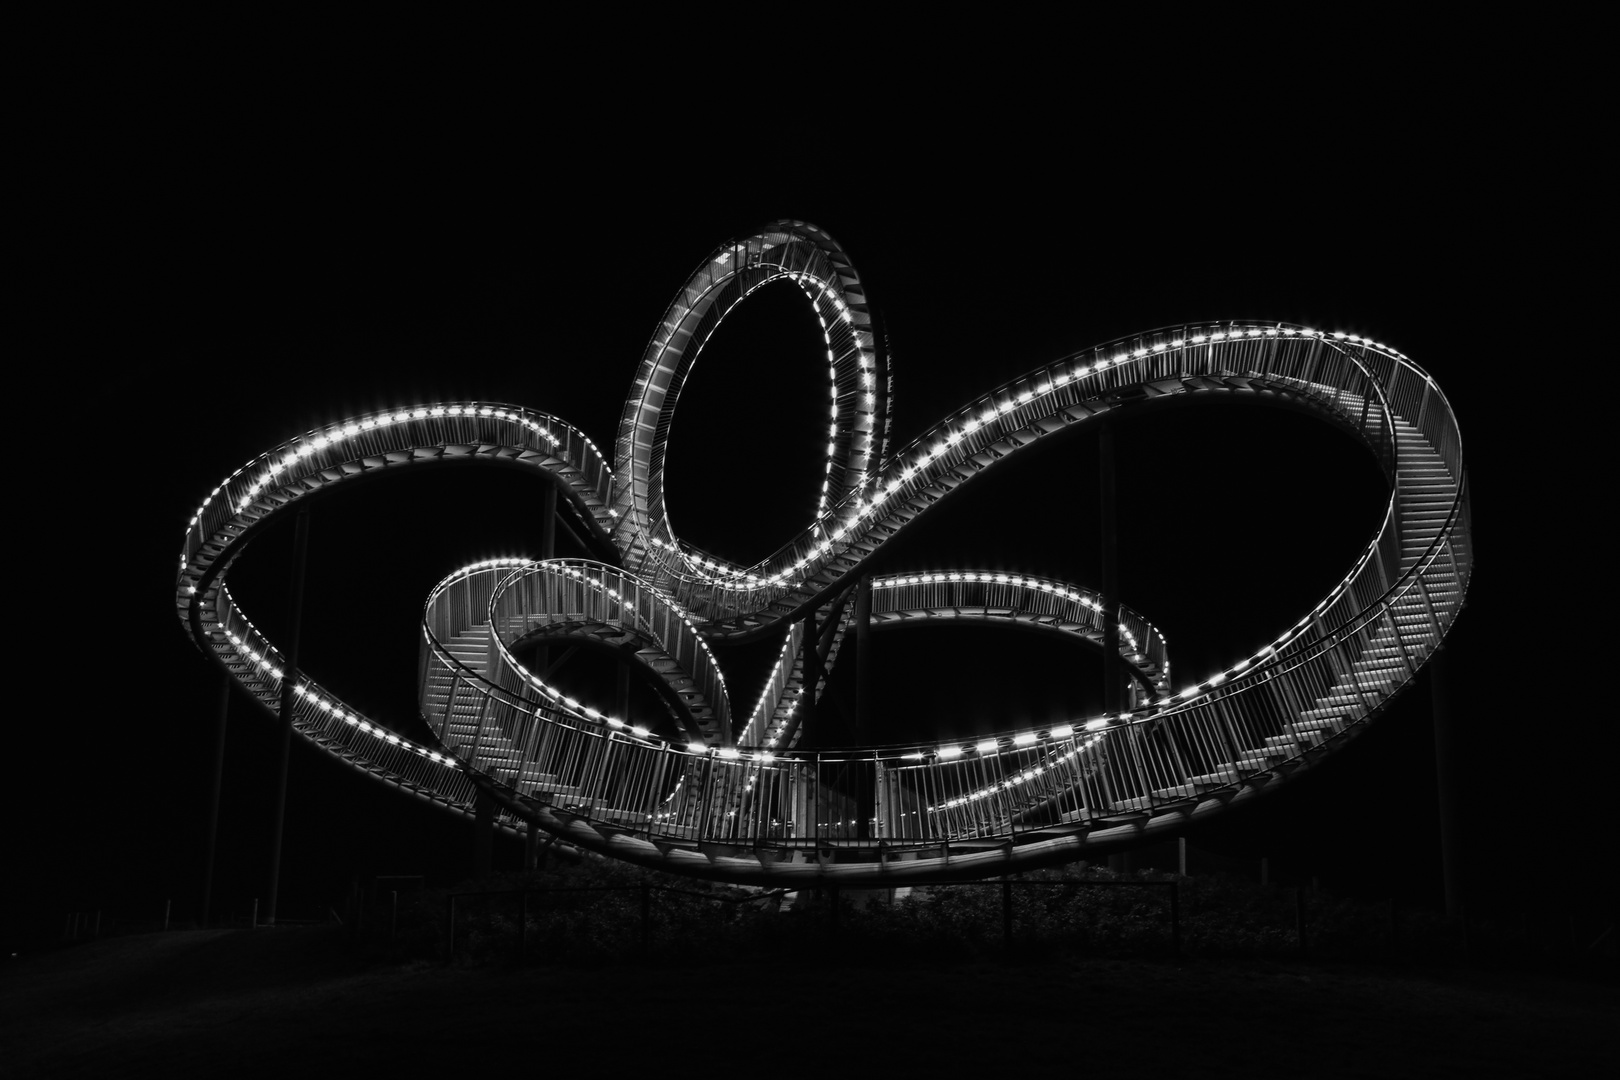 Tiger and Turtle II